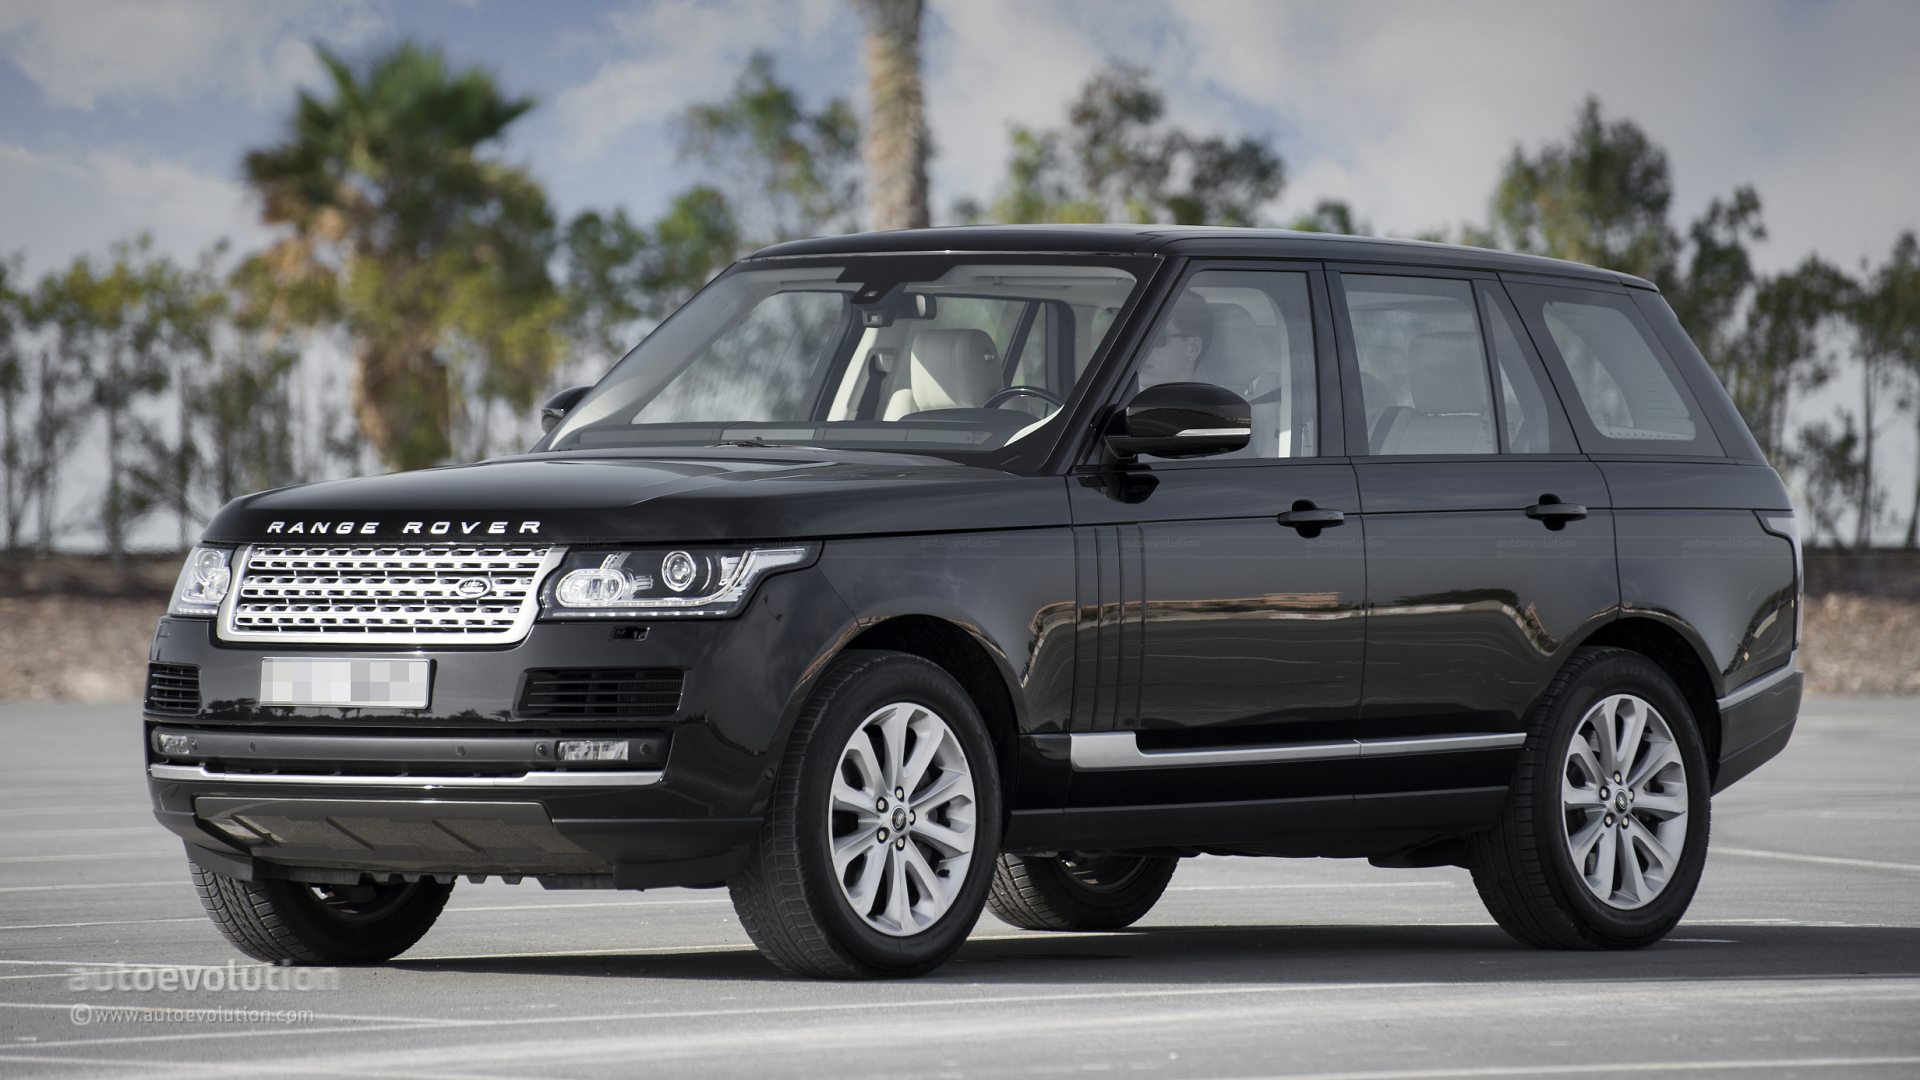 range rover the most popular car with premier league football players autoevolution. Black Bedroom Furniture Sets. Home Design Ideas